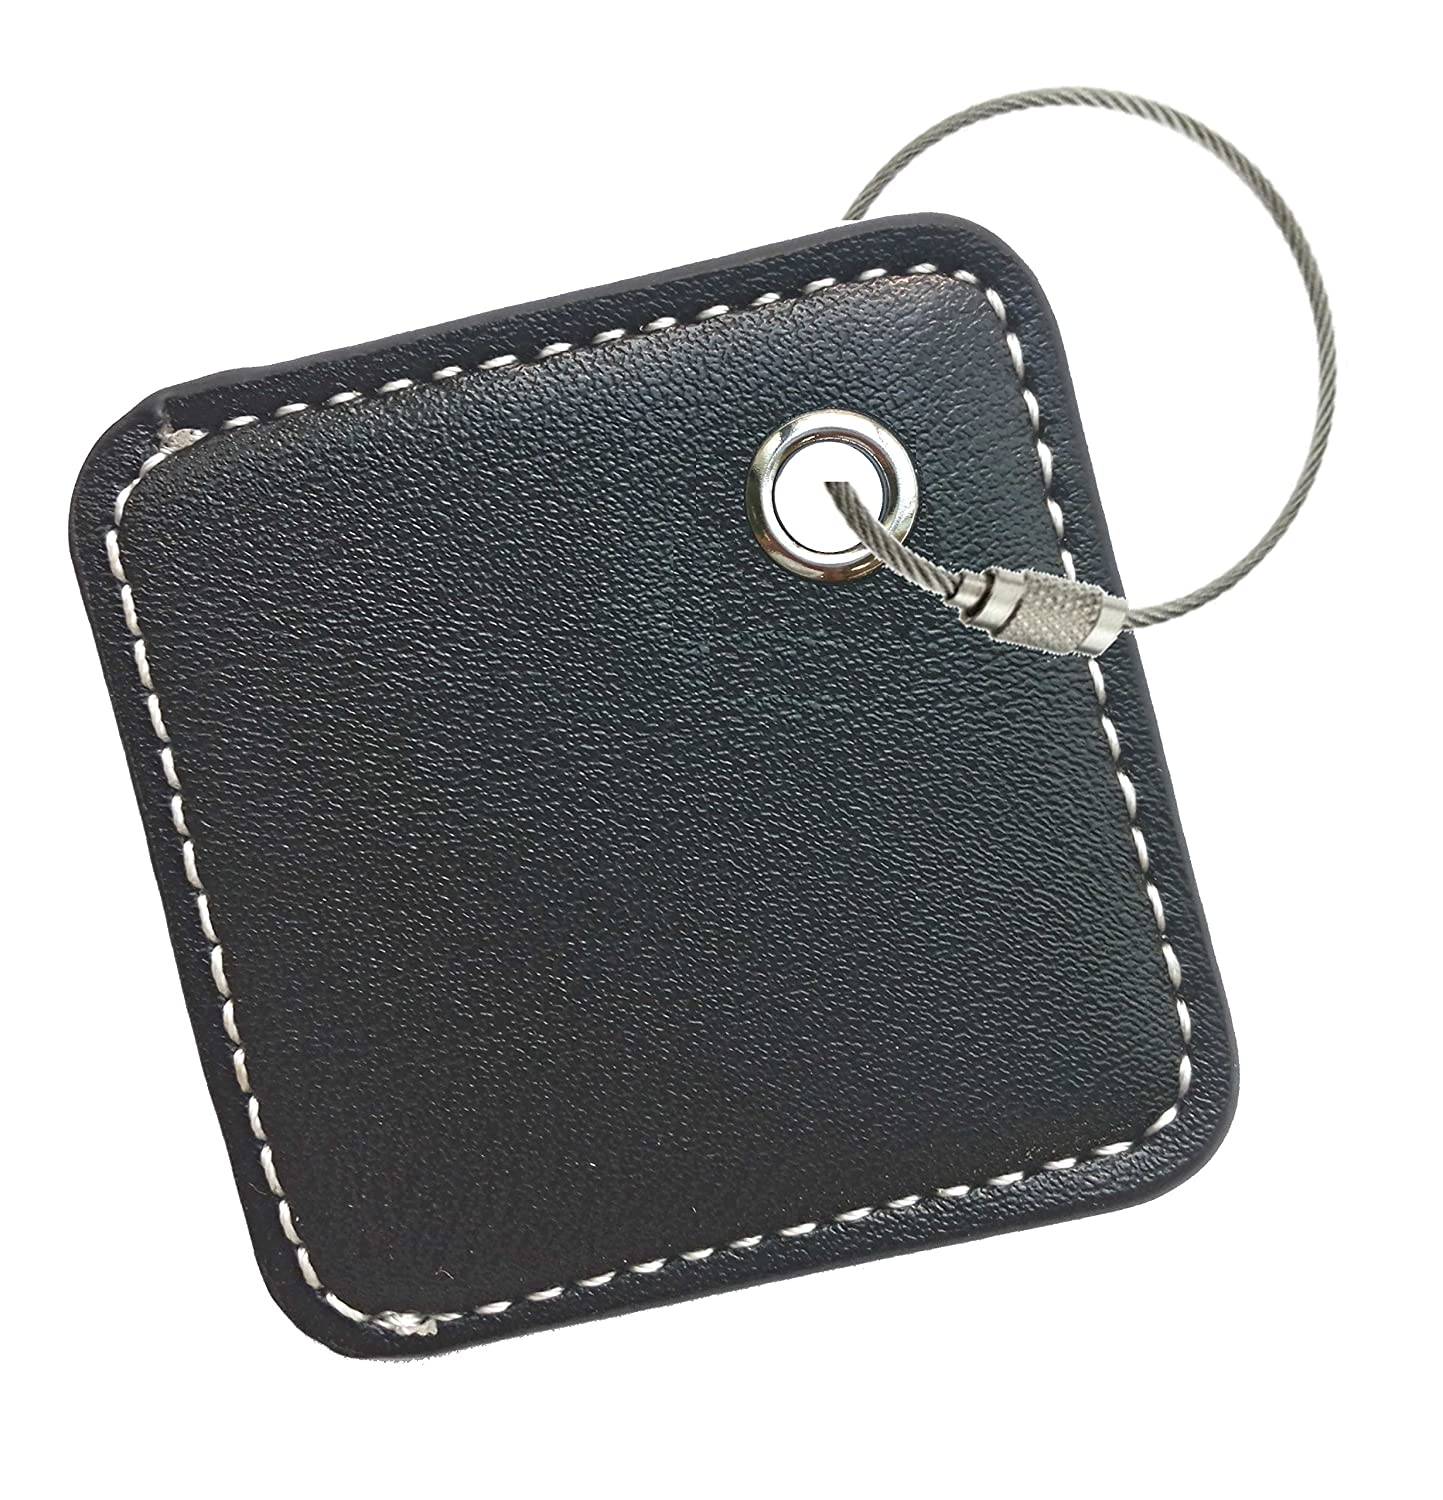 fashion key chain cover accessories for tile skin phone finder key finder item finder (only case, NO tracker included) Relho LYSB01M3PA4C5-ELECTRNCS